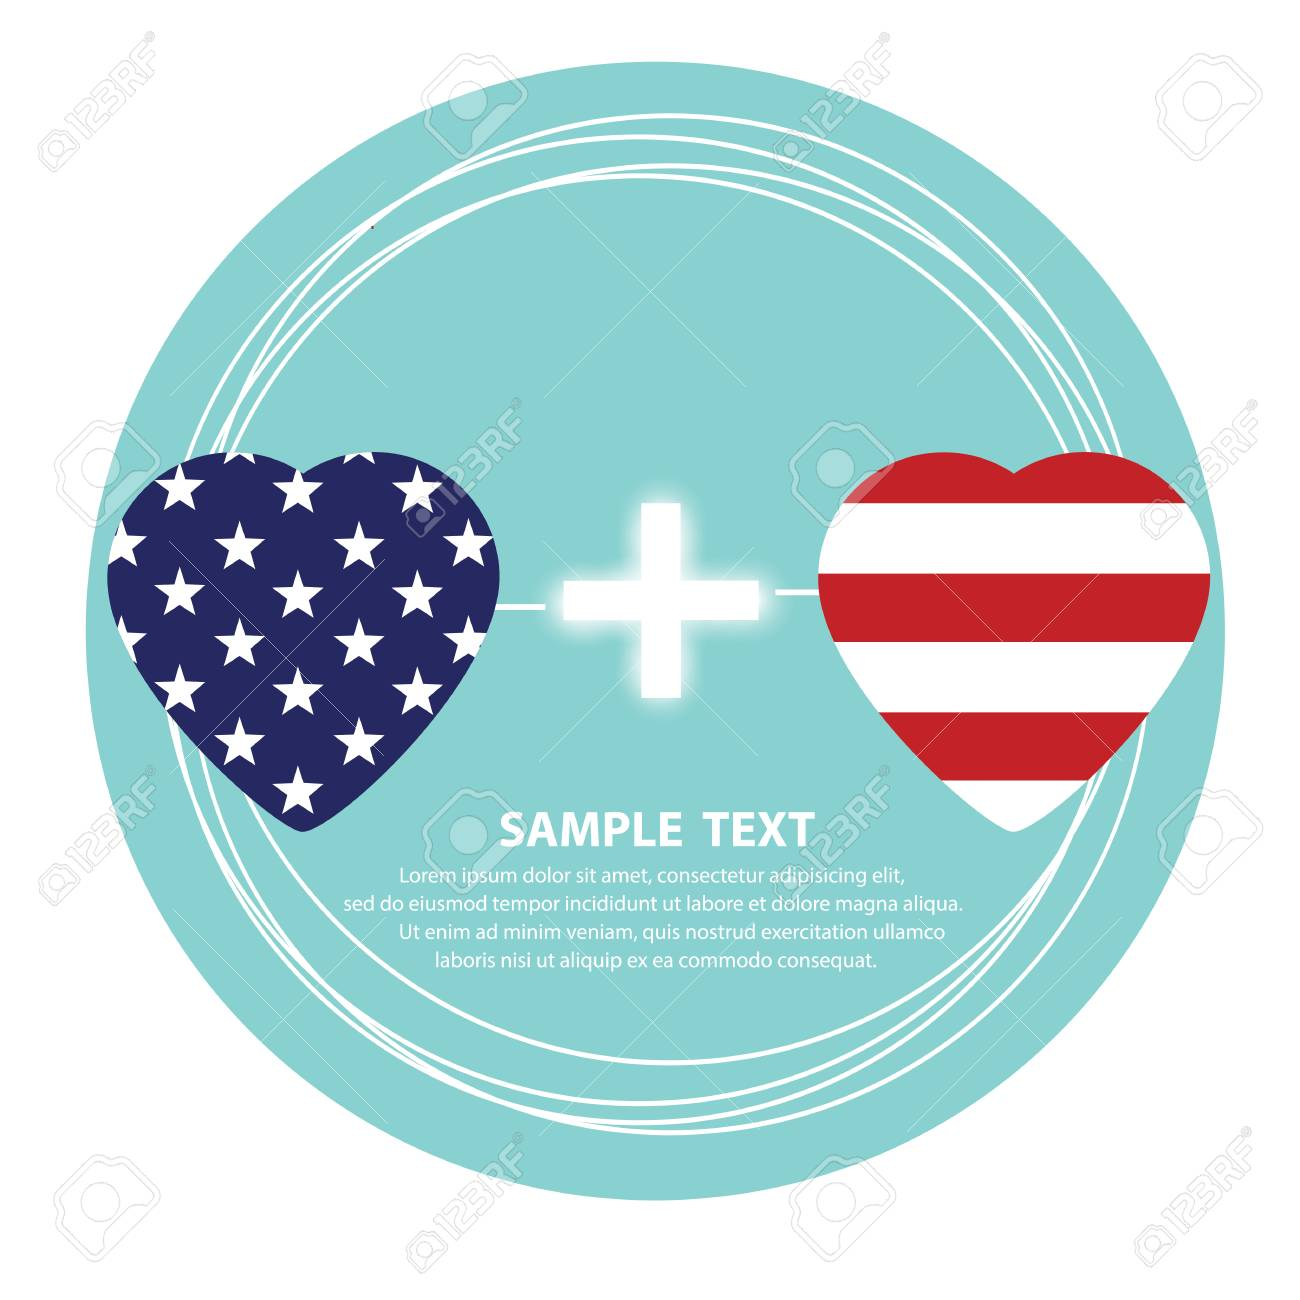 528ad3ba840 symbol USA. vector illustration Stock Vector - 68284949